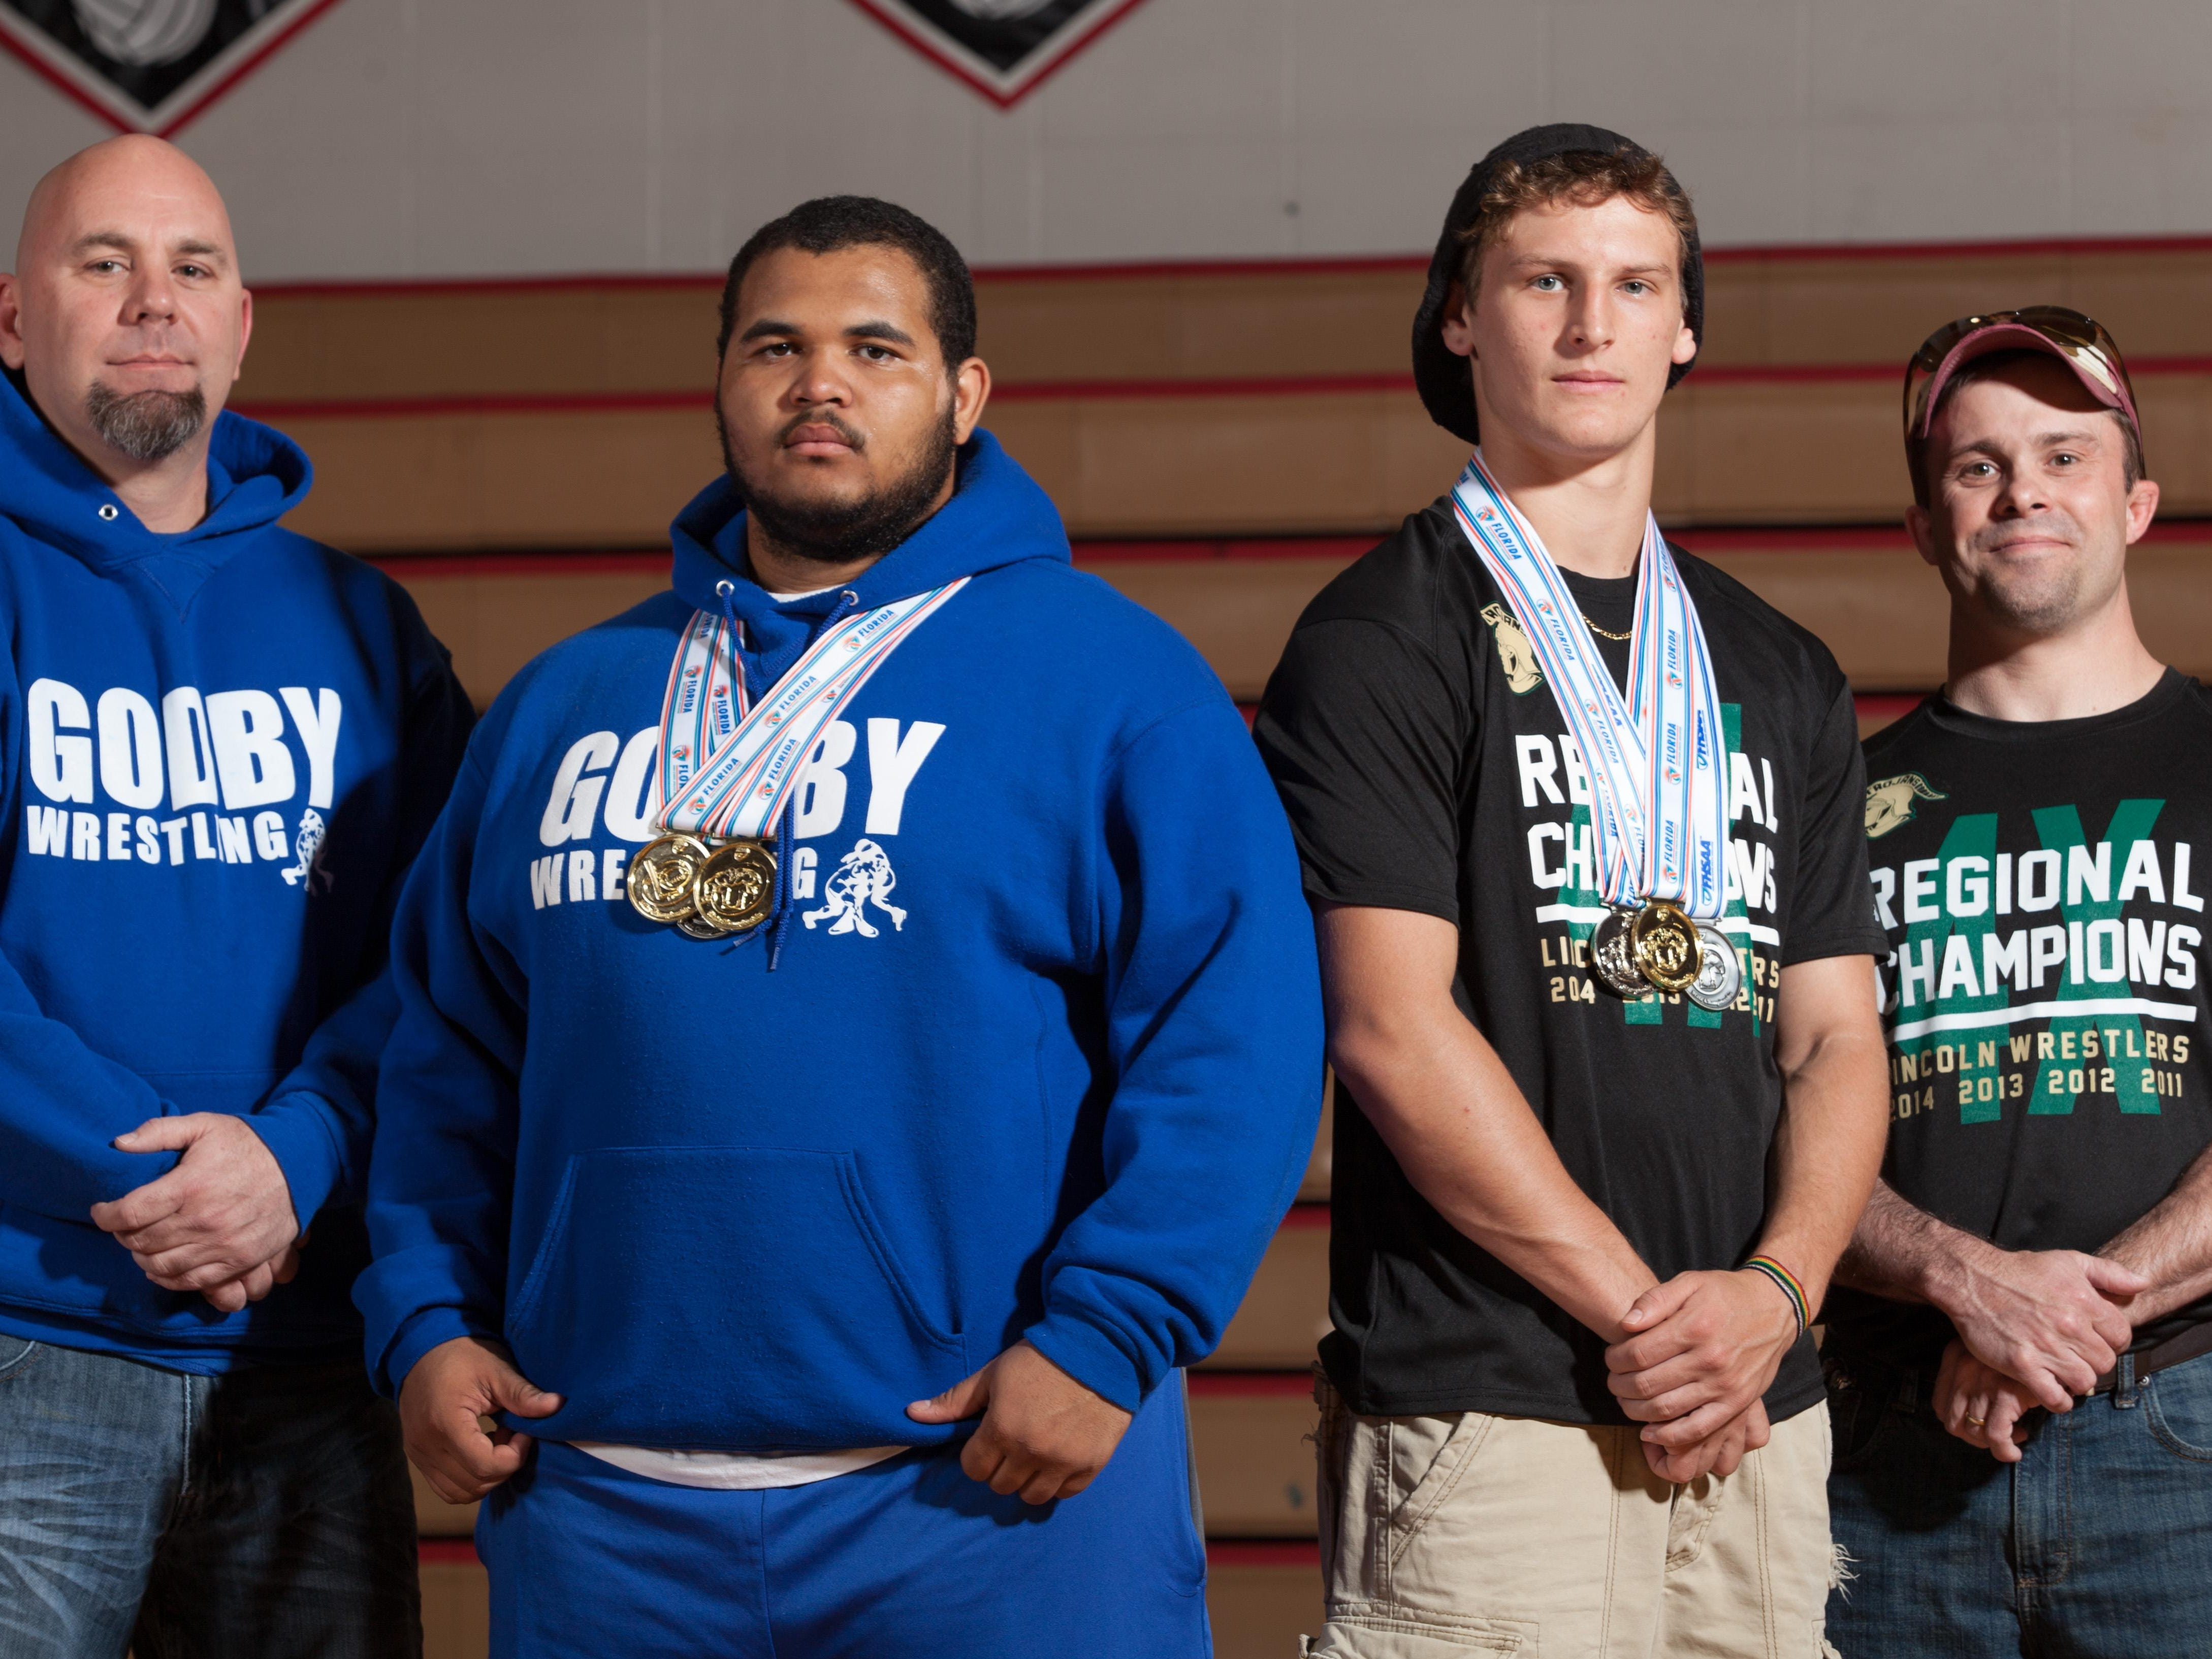 Godby's MaShawn Knight and Lincoln's Tristan Sommer won state titles as seniors during the 2013-14 wrestling season.